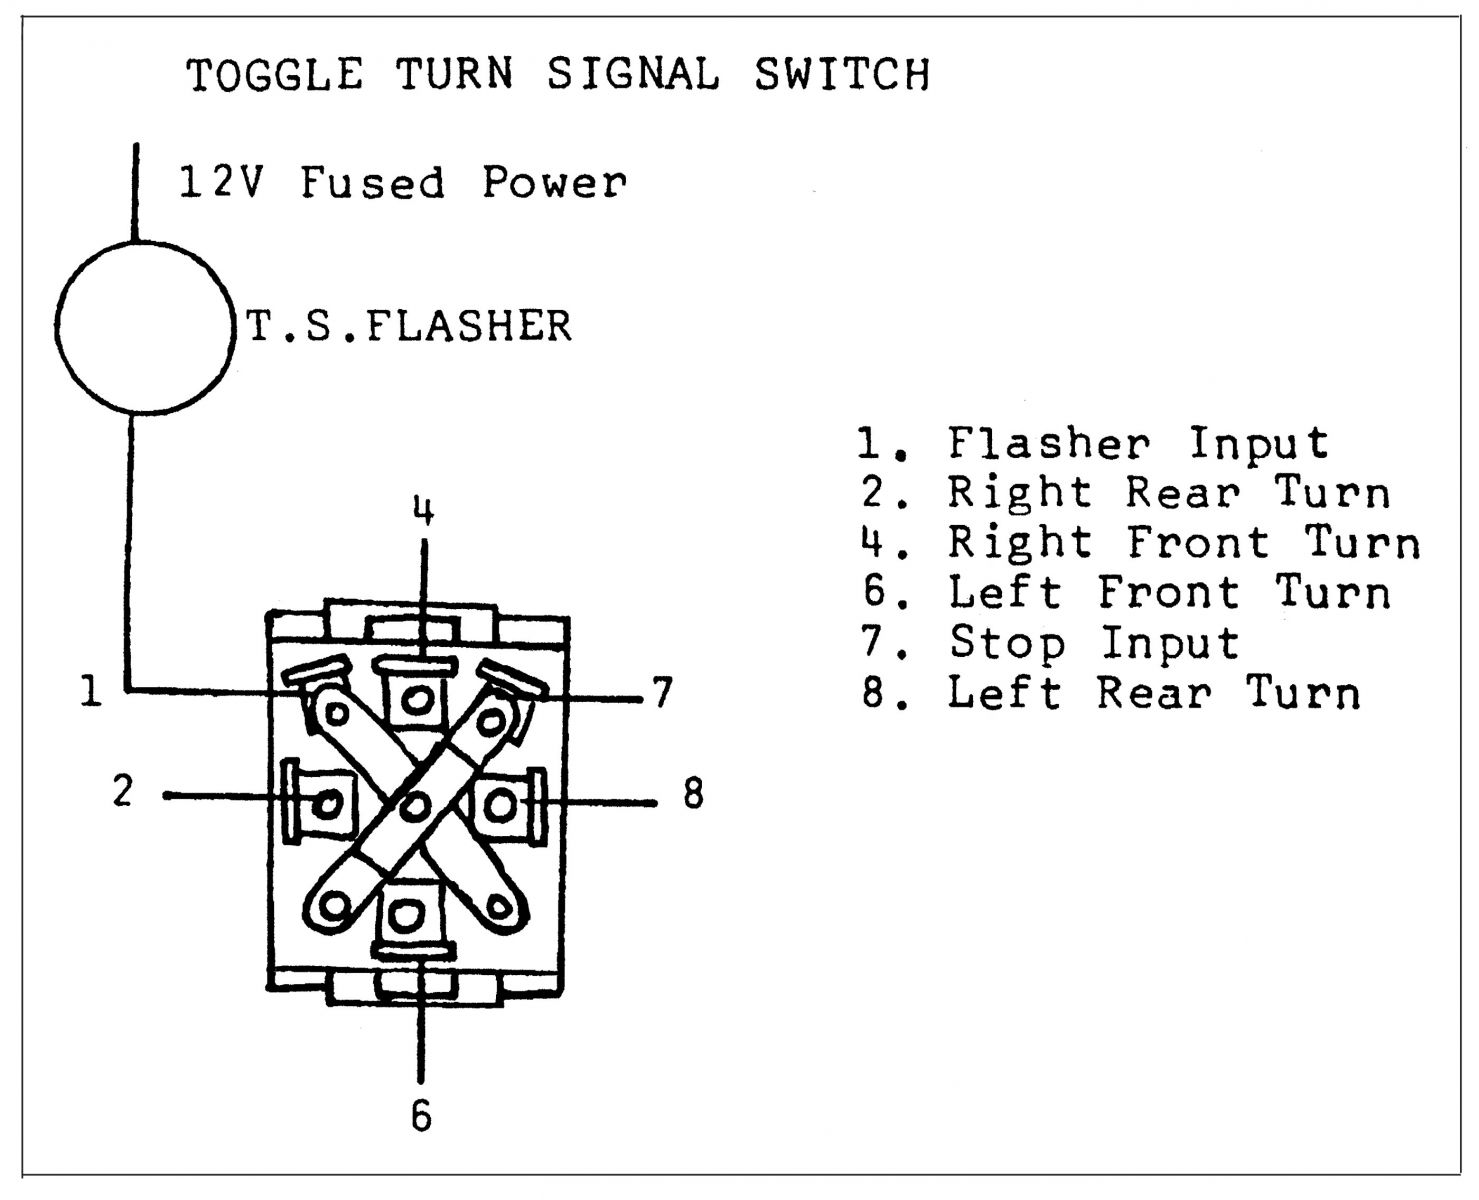 Turn signals 3 turn signals for early hot rods hotrod hotline auto flasher wiring diagram at bayanpartner.co